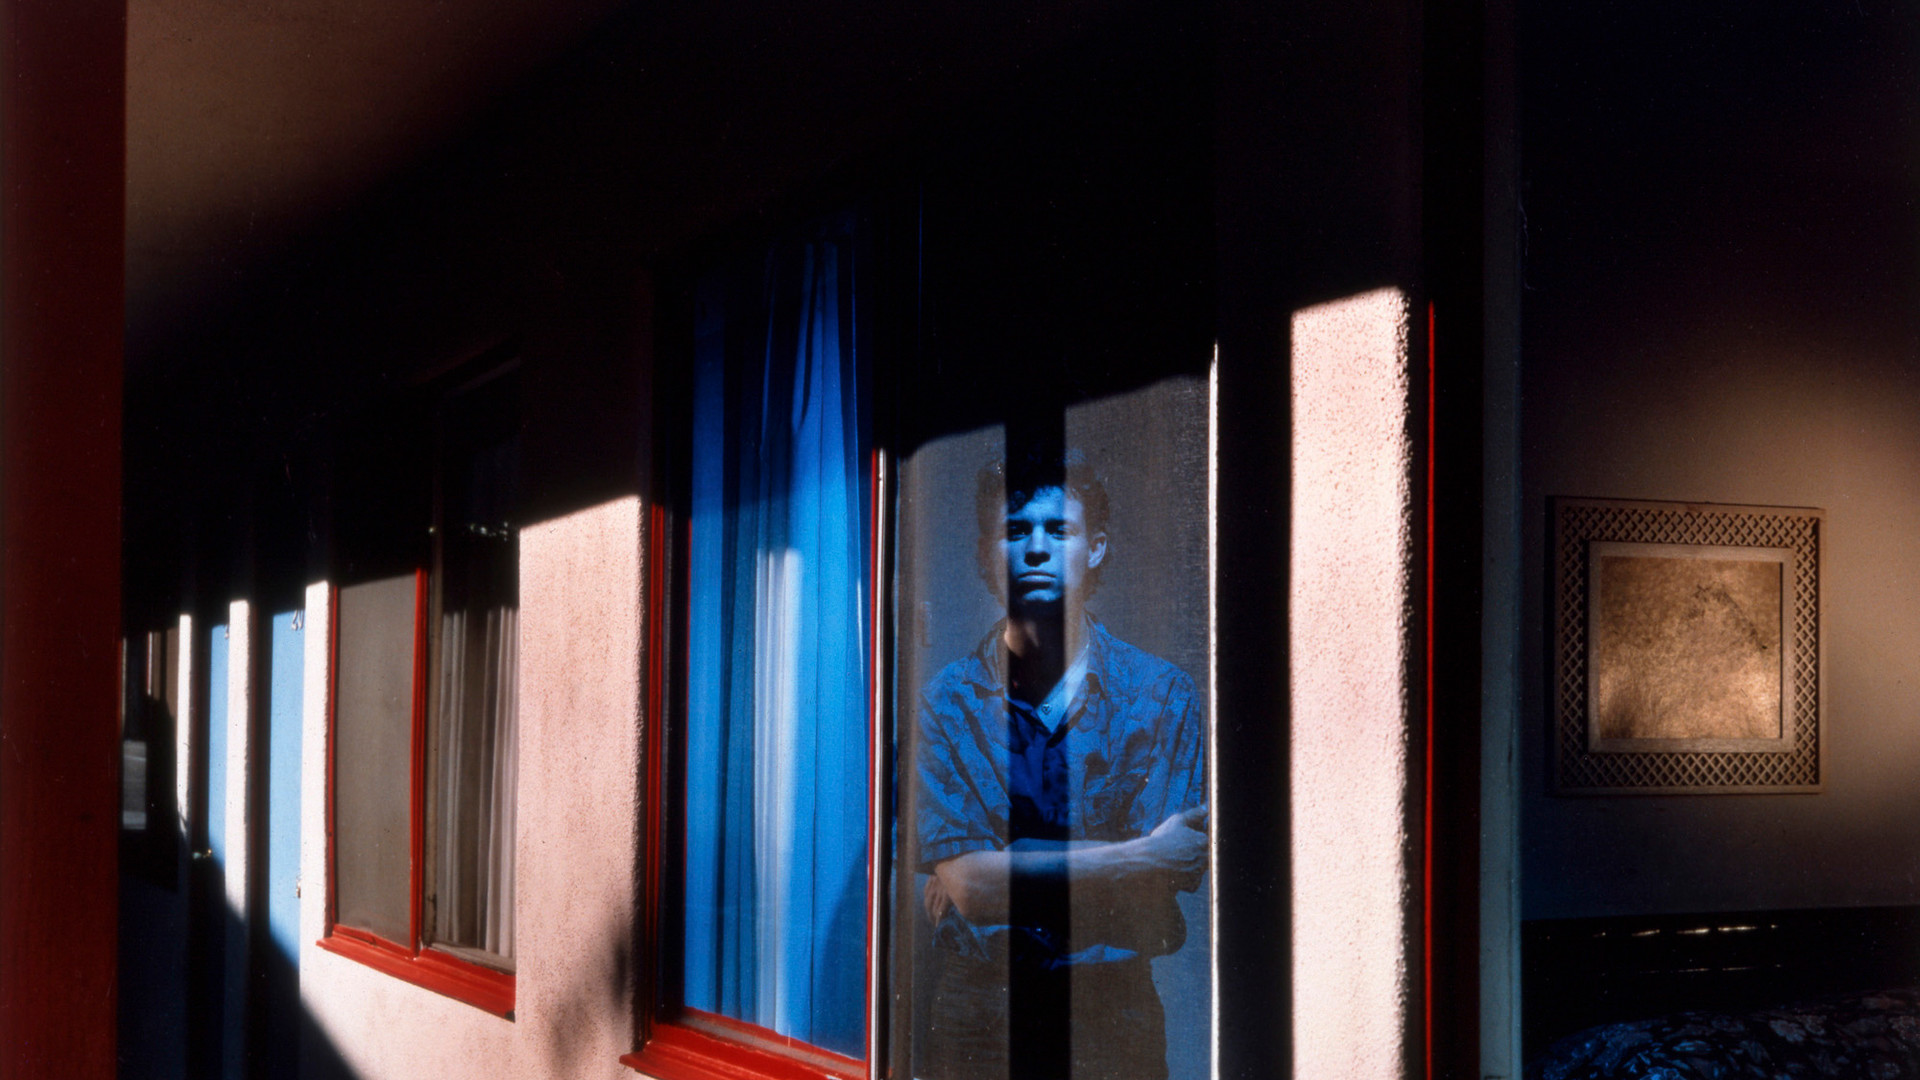 Philip-Lorca diCorcia, William Charles Everlove, 26, Stockholm via Arizona, $40, 1990-92